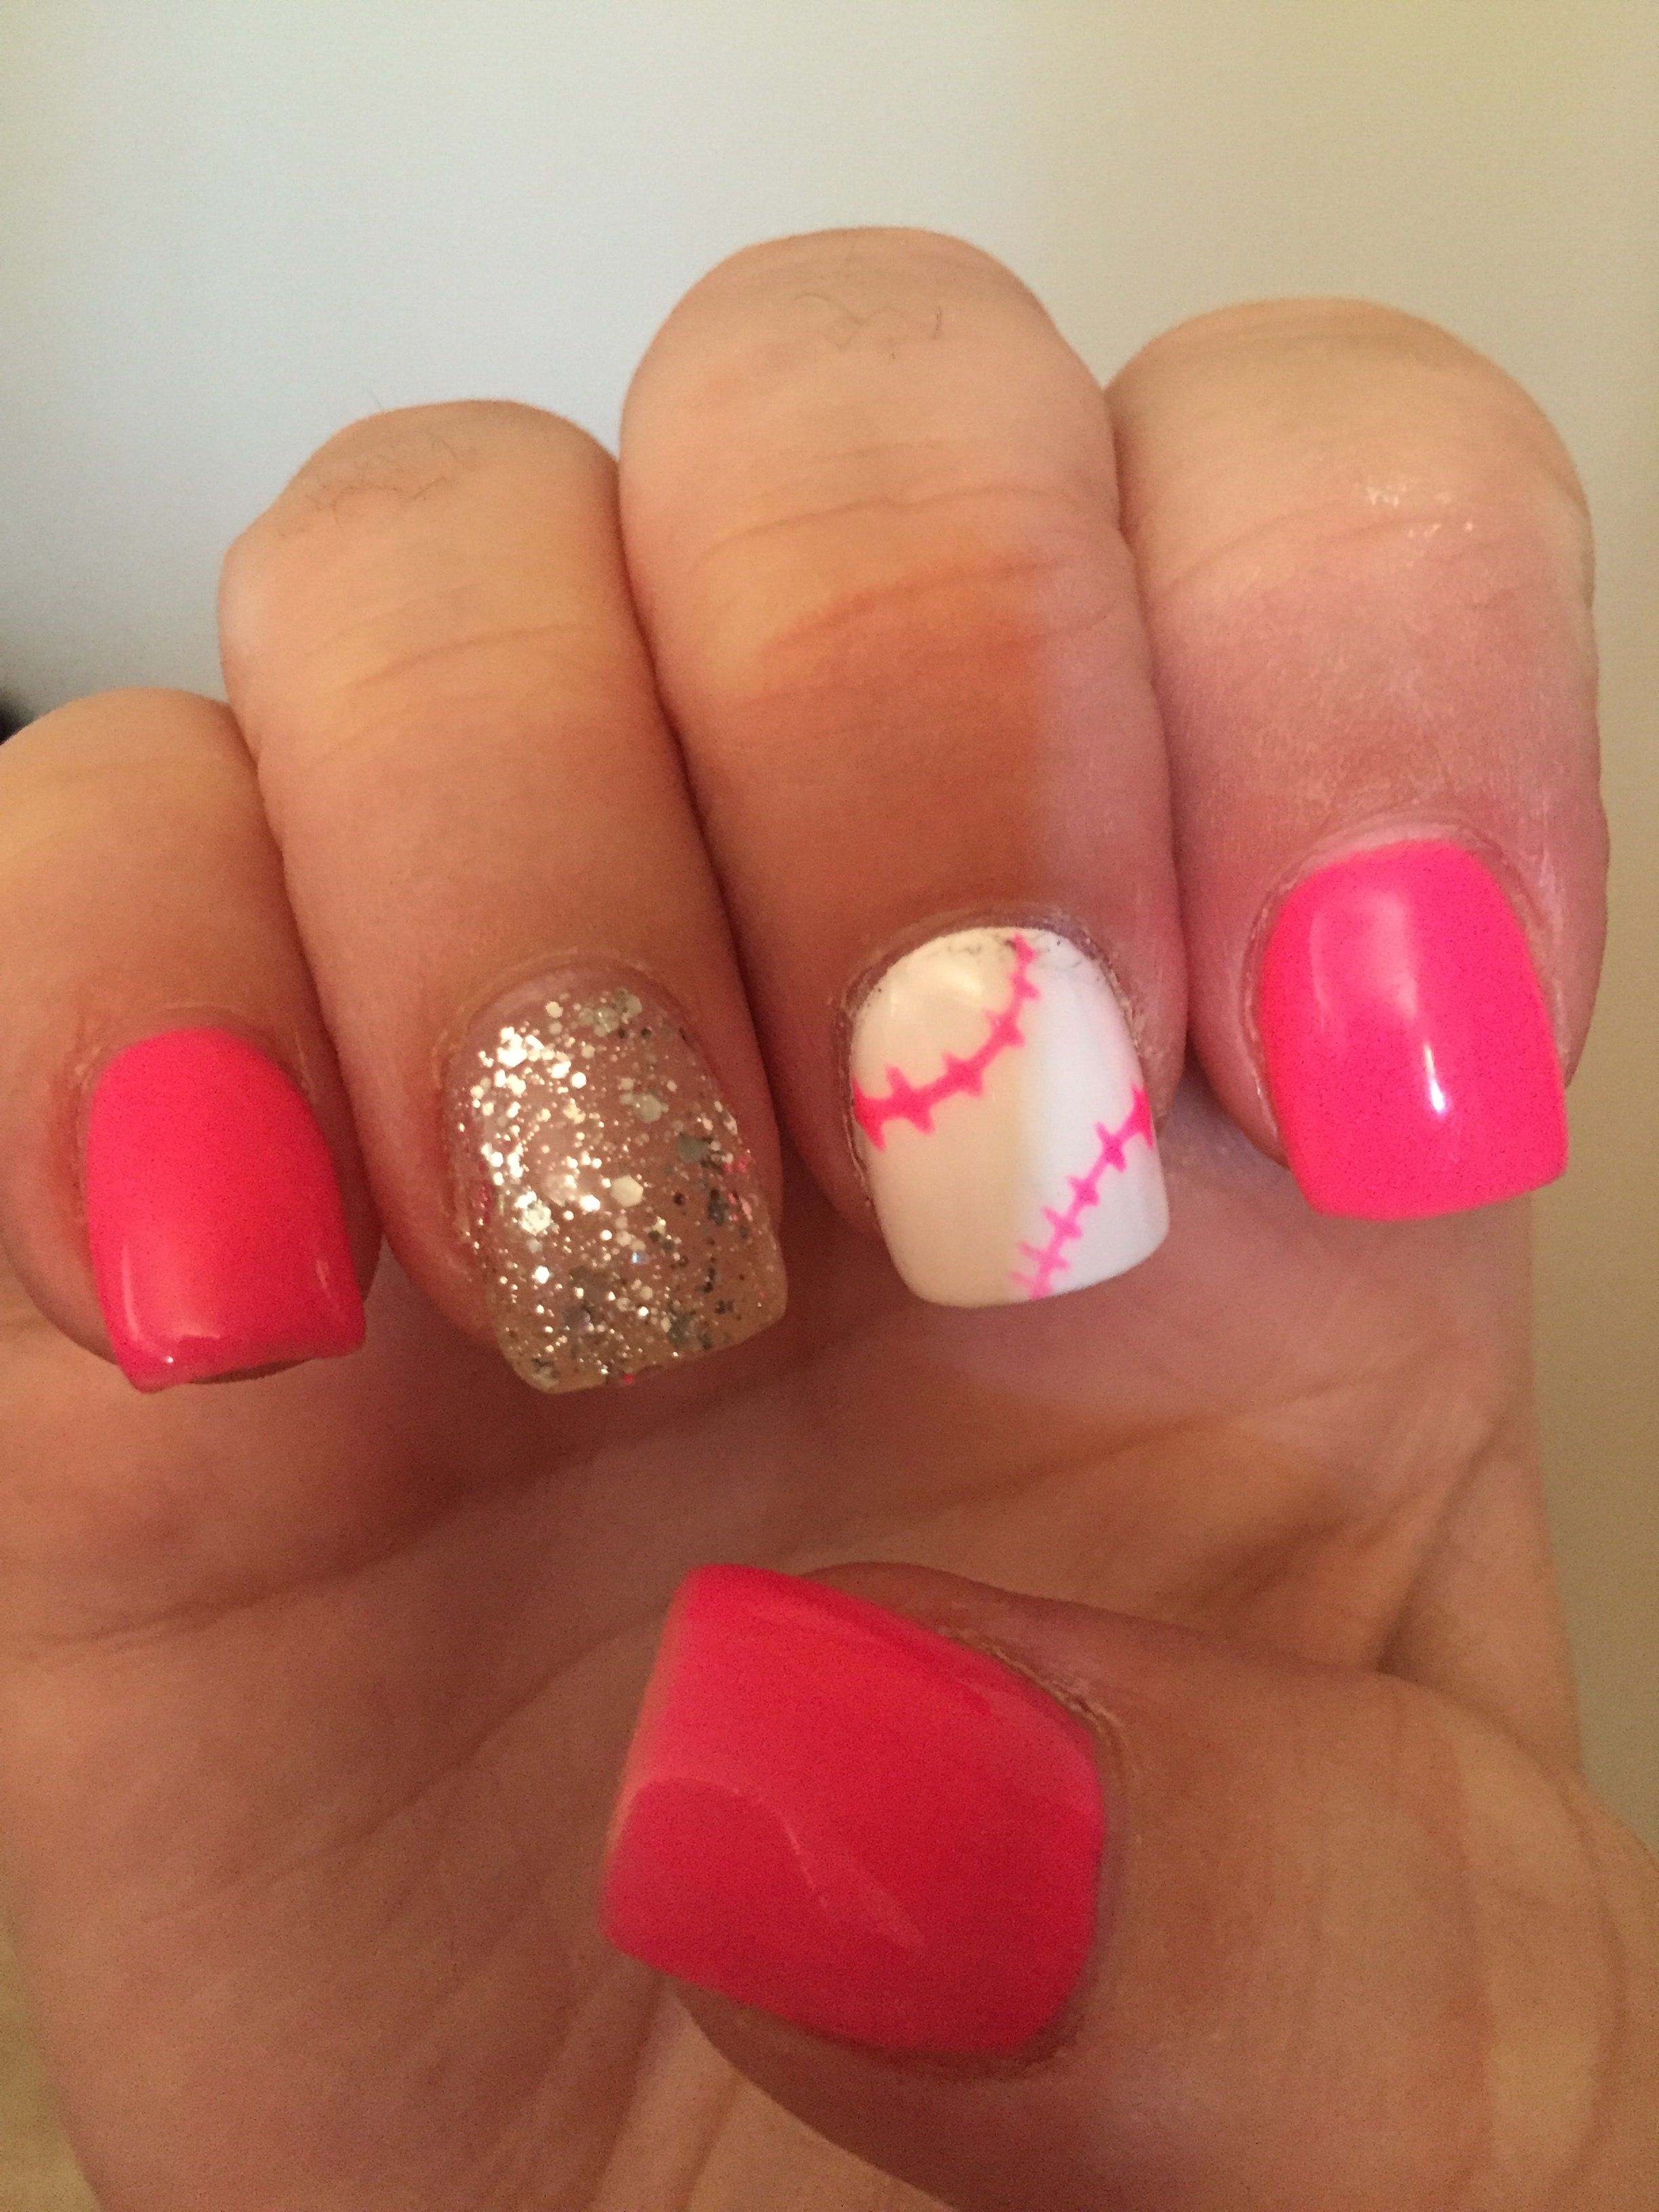 pink softball nails with glitter. | nails <3 :] | pinterest